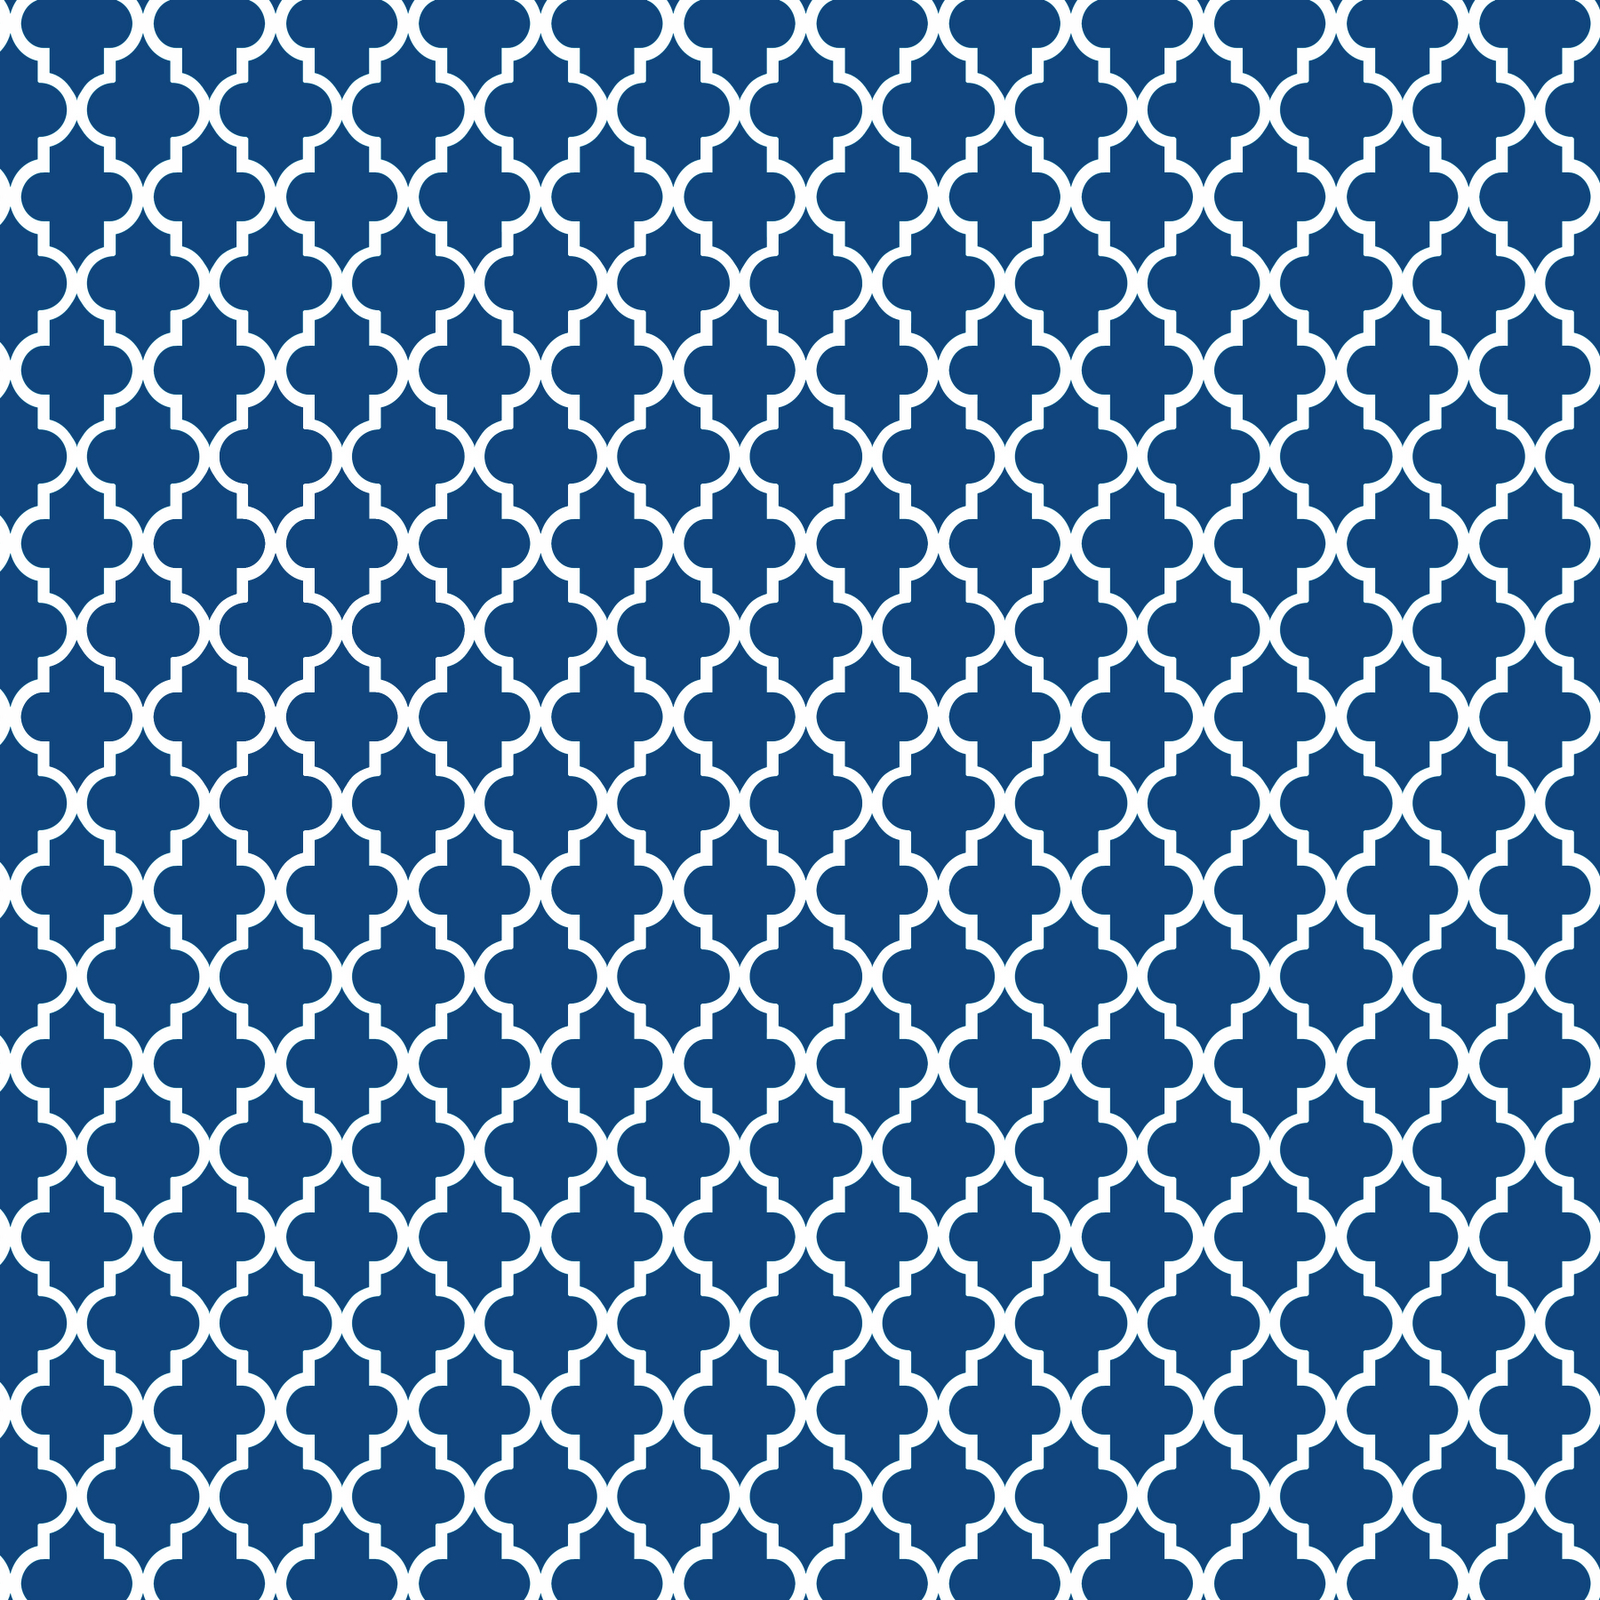 Free Printable Patterns (Click On Images And Save) | Printables - Free Printable Moroccan Pattern